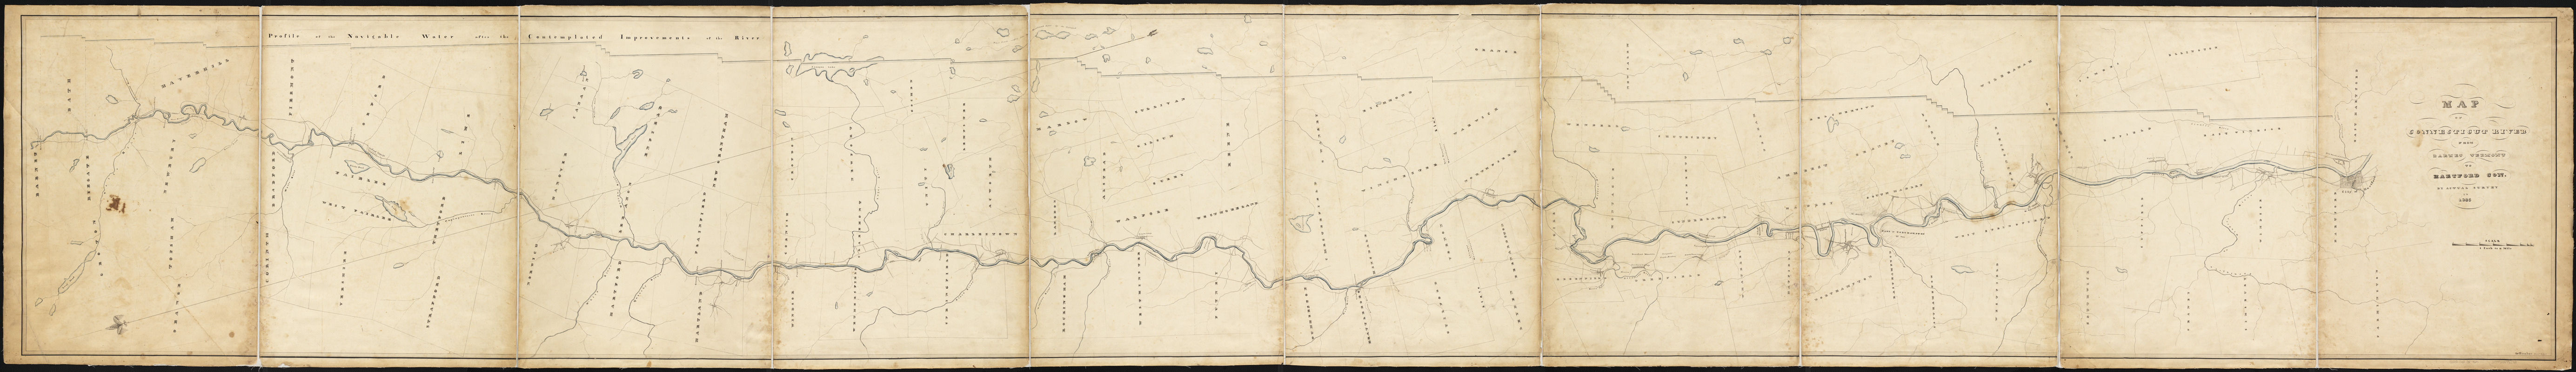 Map of Connecticut River from Barnet Vermont to Hartford Con